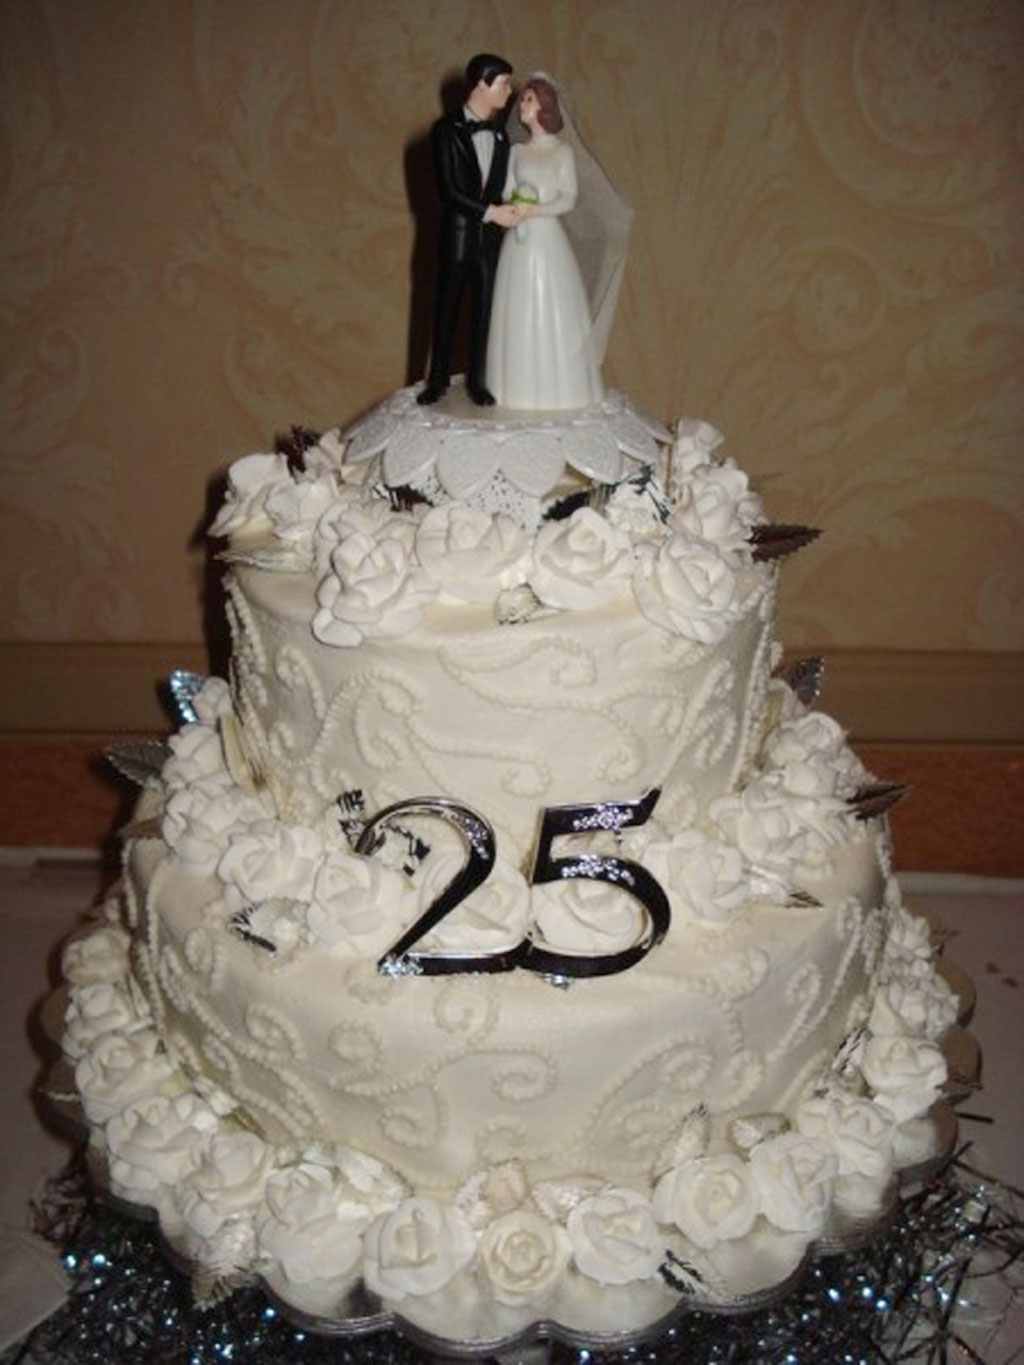 5 year wedding anniversary ideas 25th wedding anniversary 25th wedding anniversary cake ideas wedding cake cake ideas by on 25th wedding anniversary cakes pictures